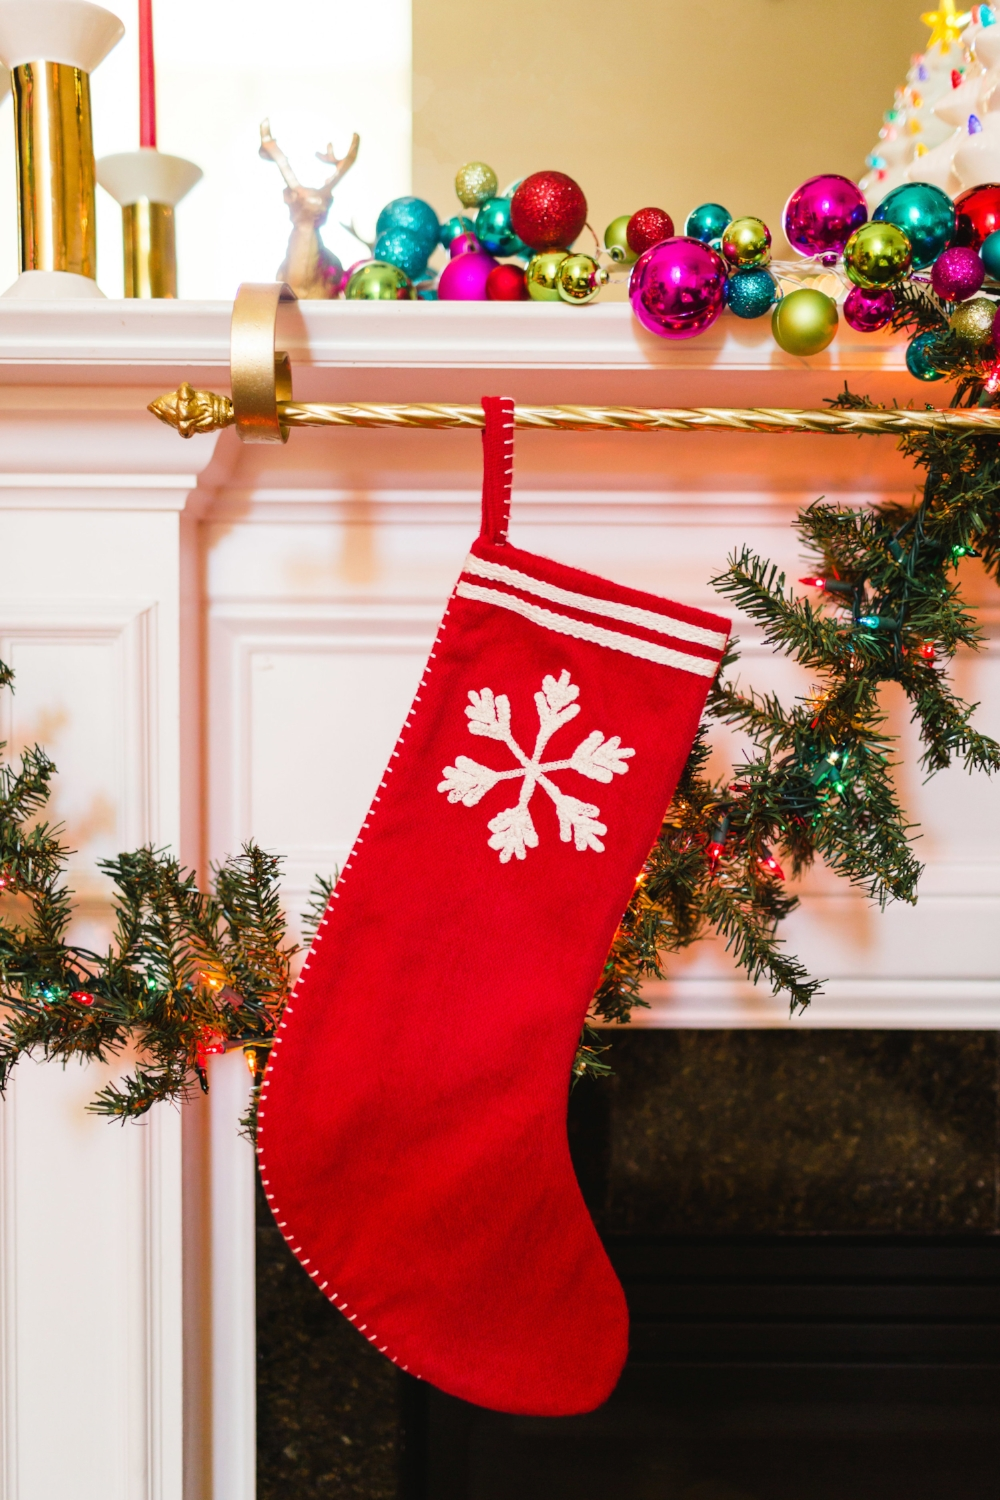 These  stockings  from Target are so cute! And the  gorgeous stocking holder  from Kirklands that I love so much!